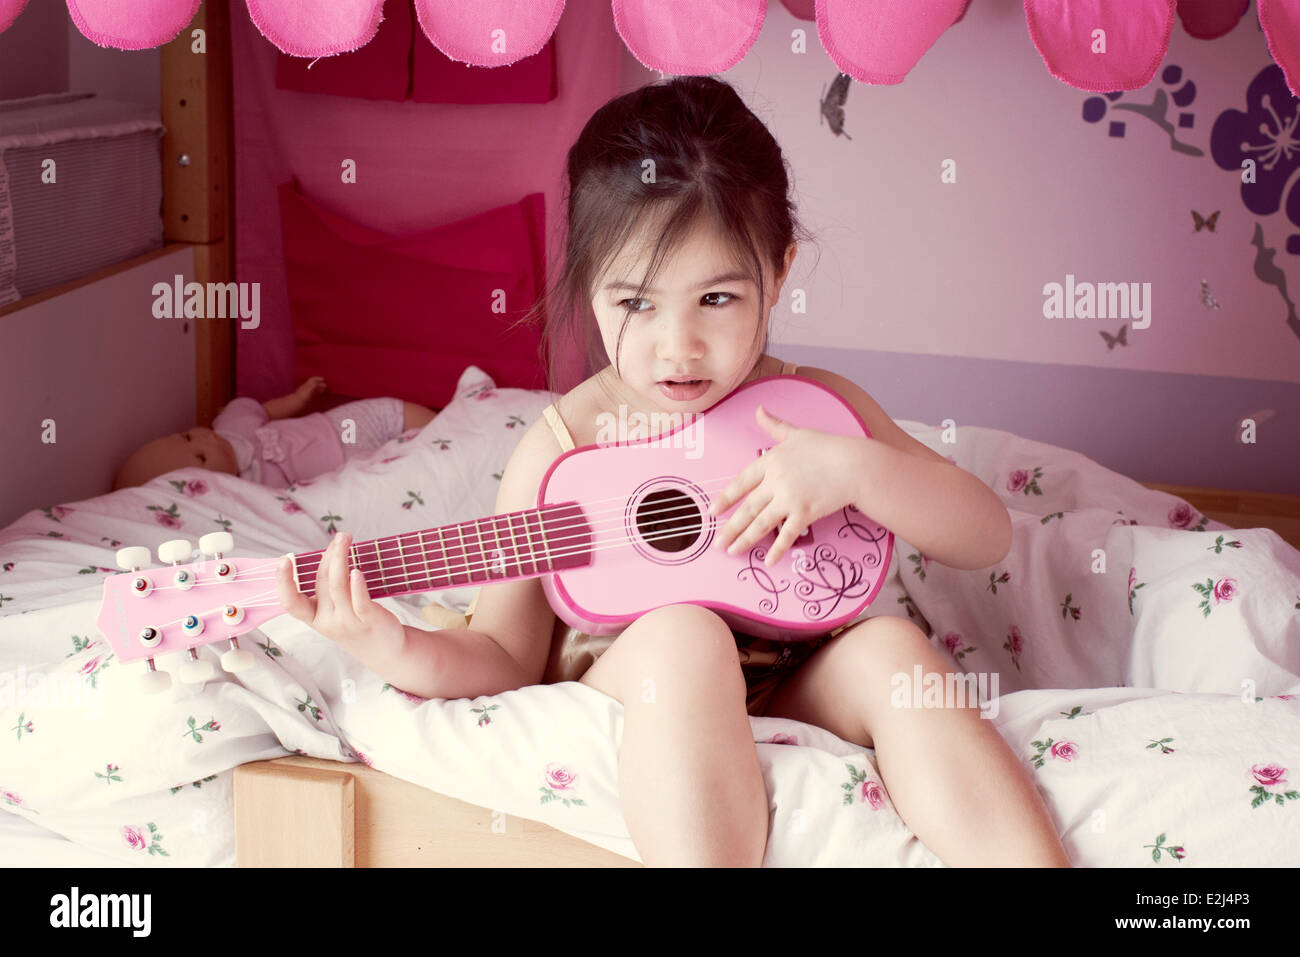 Little girl sitting on bed, playing toy guitar - Stock Image